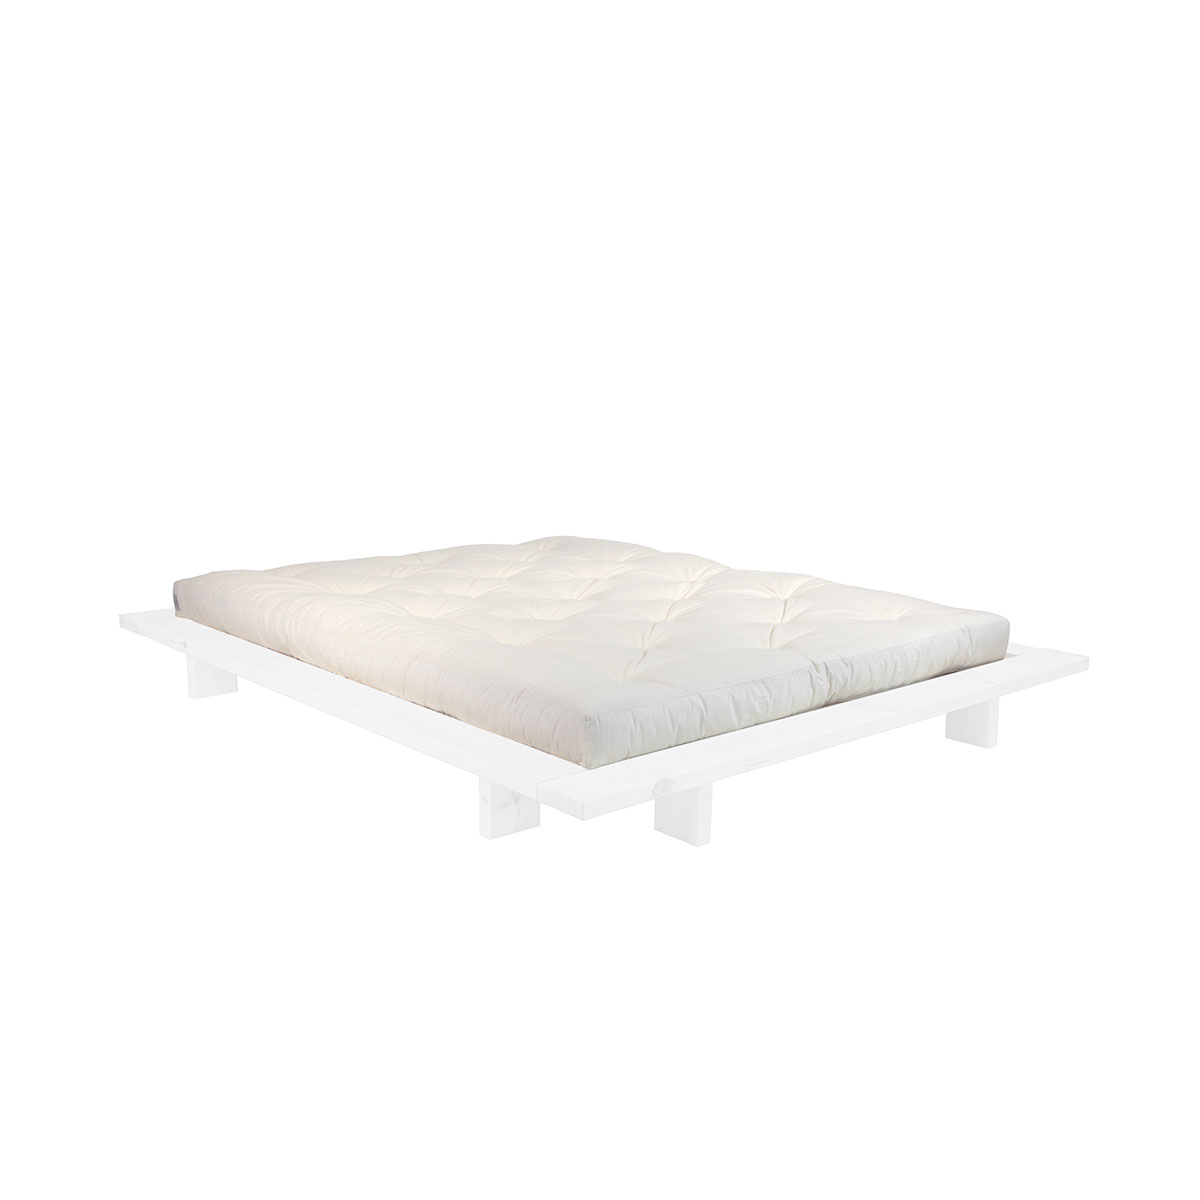 KARUP DESIGN Postel z borovicového dřeva Japan  Double Latex Mat – WhiteNatural